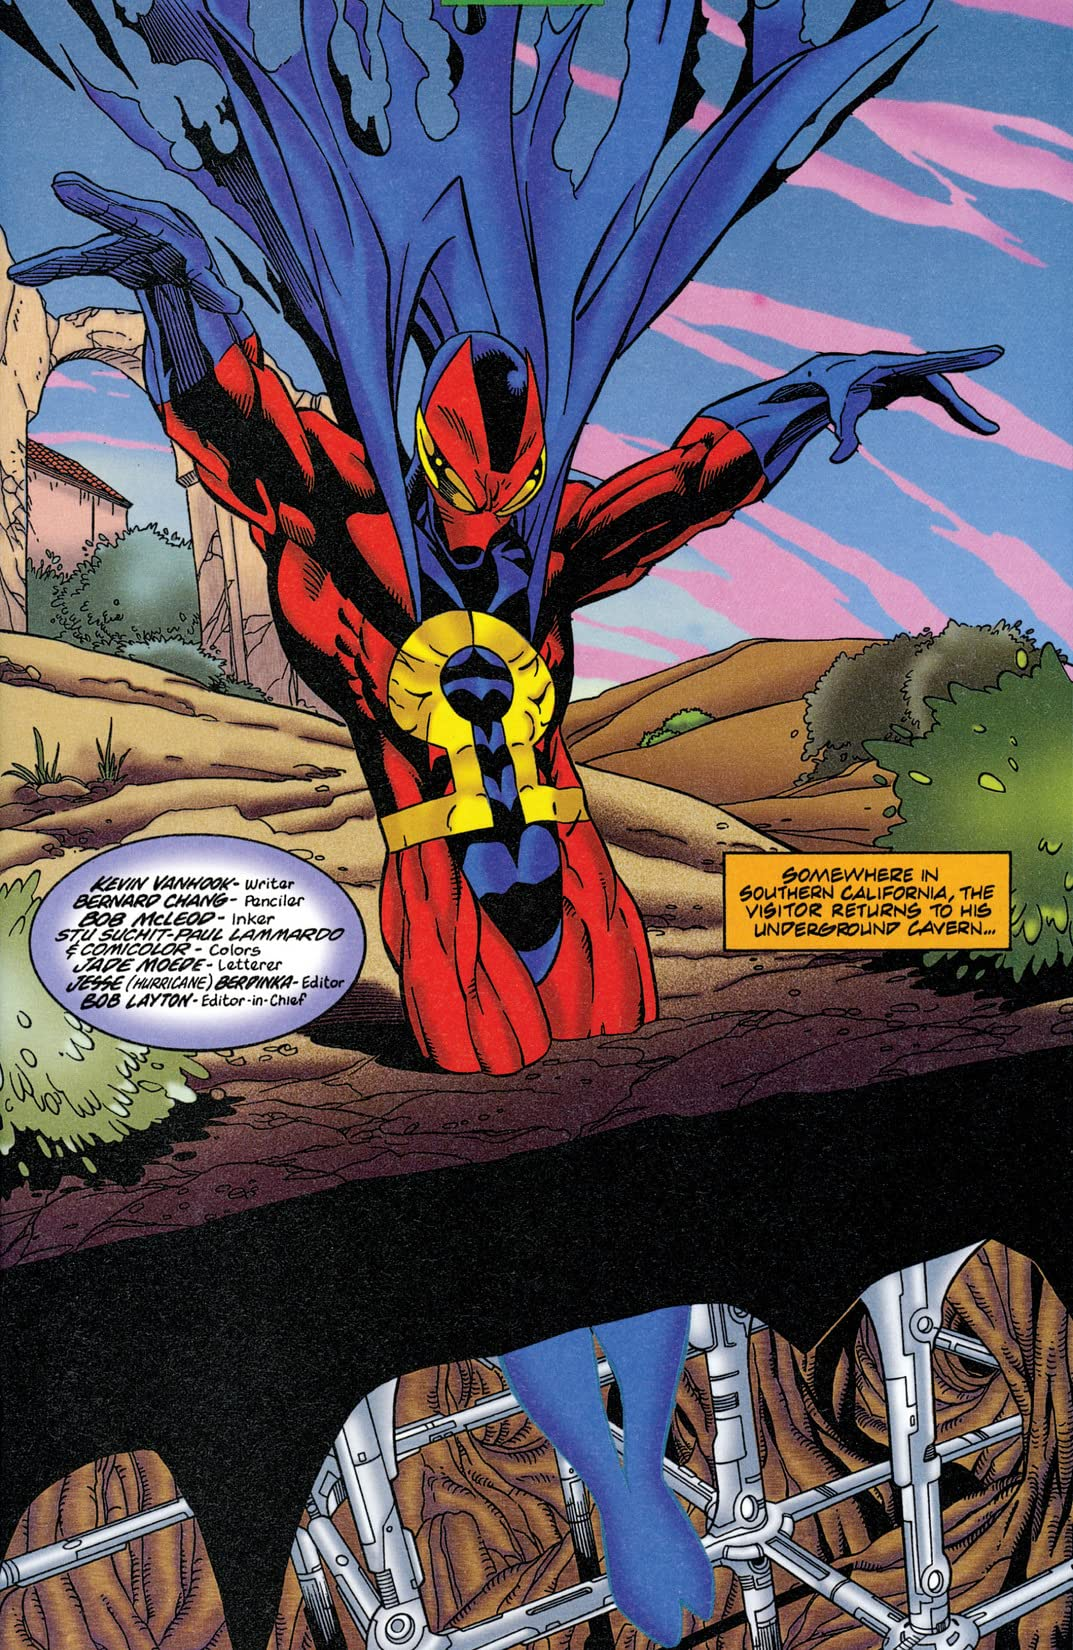 The Visitor (1995) #8